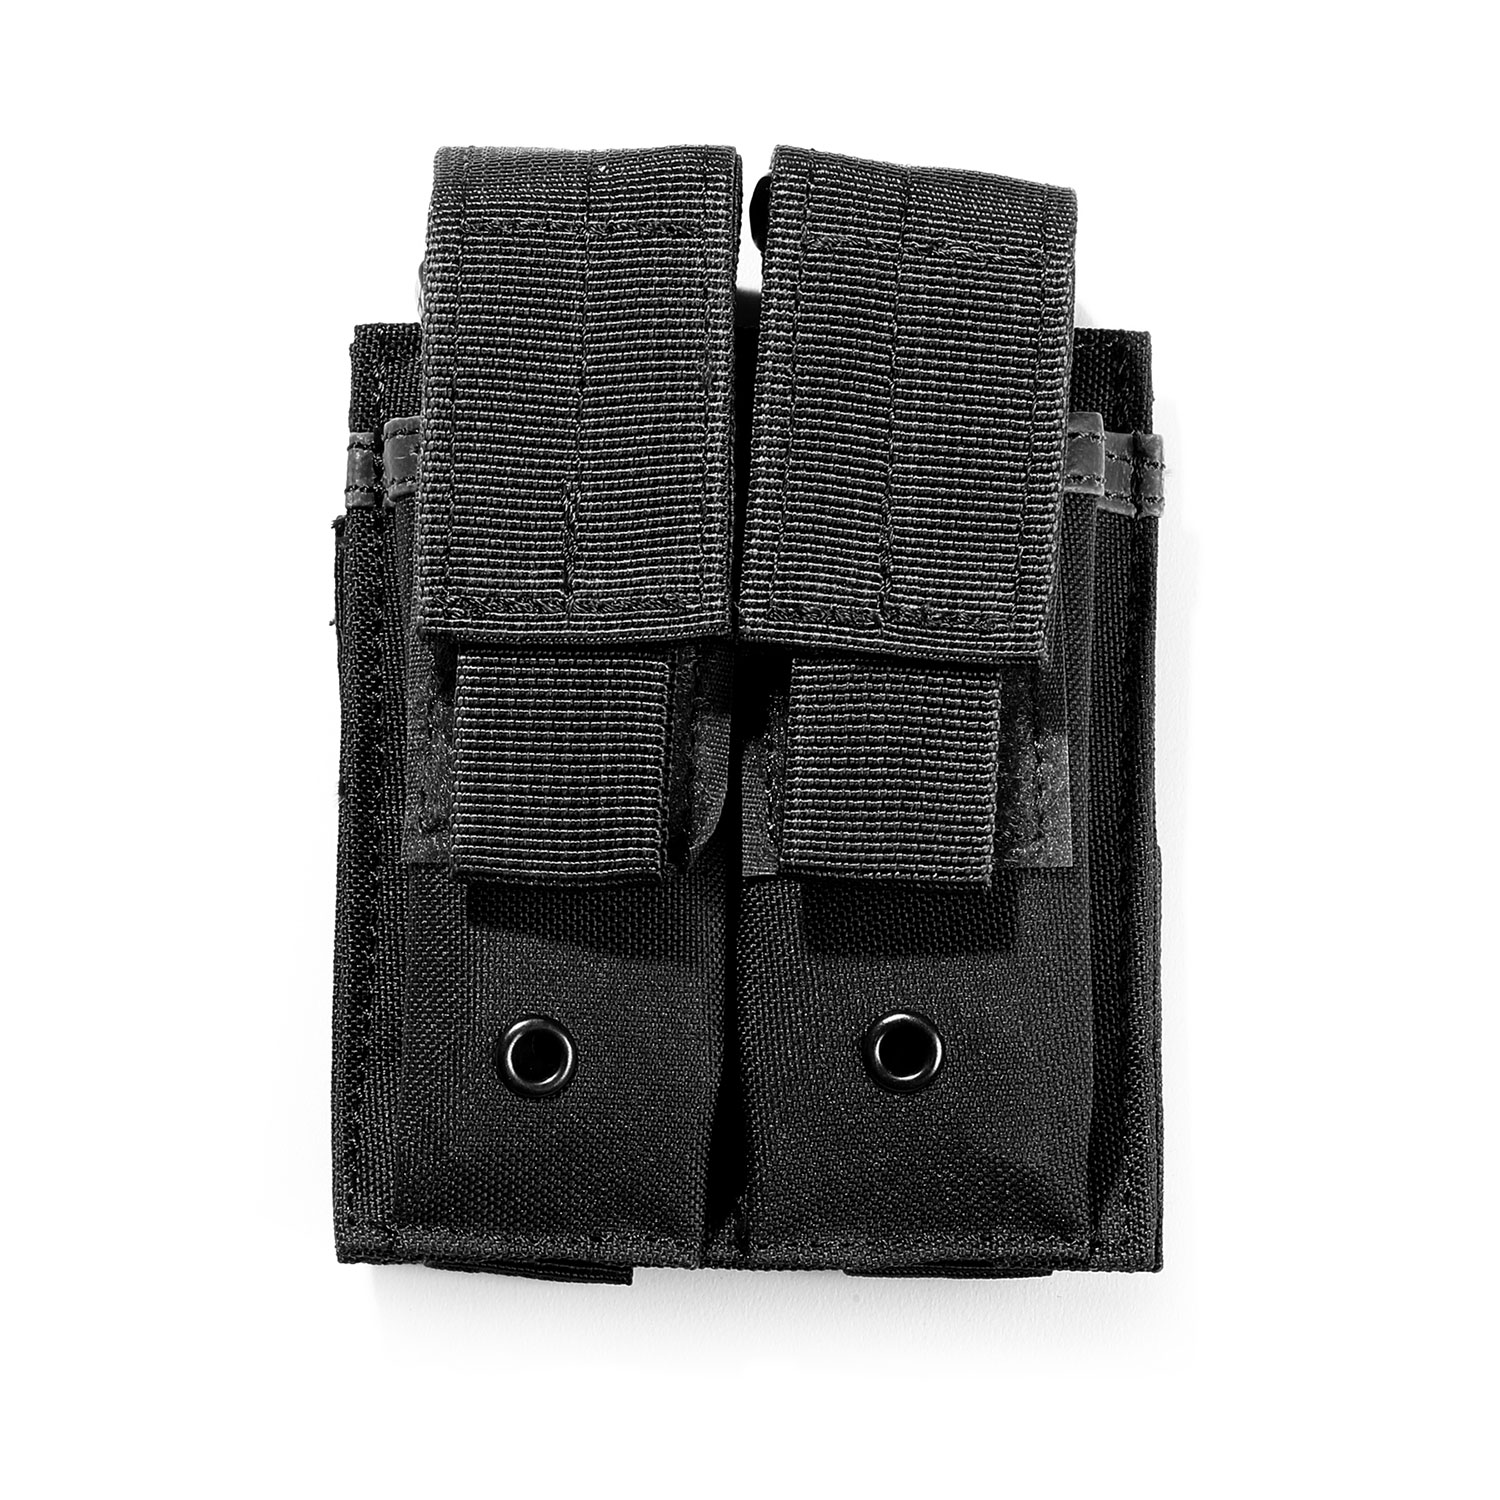 5ive Star Gear Double Pistol Mag Pouch